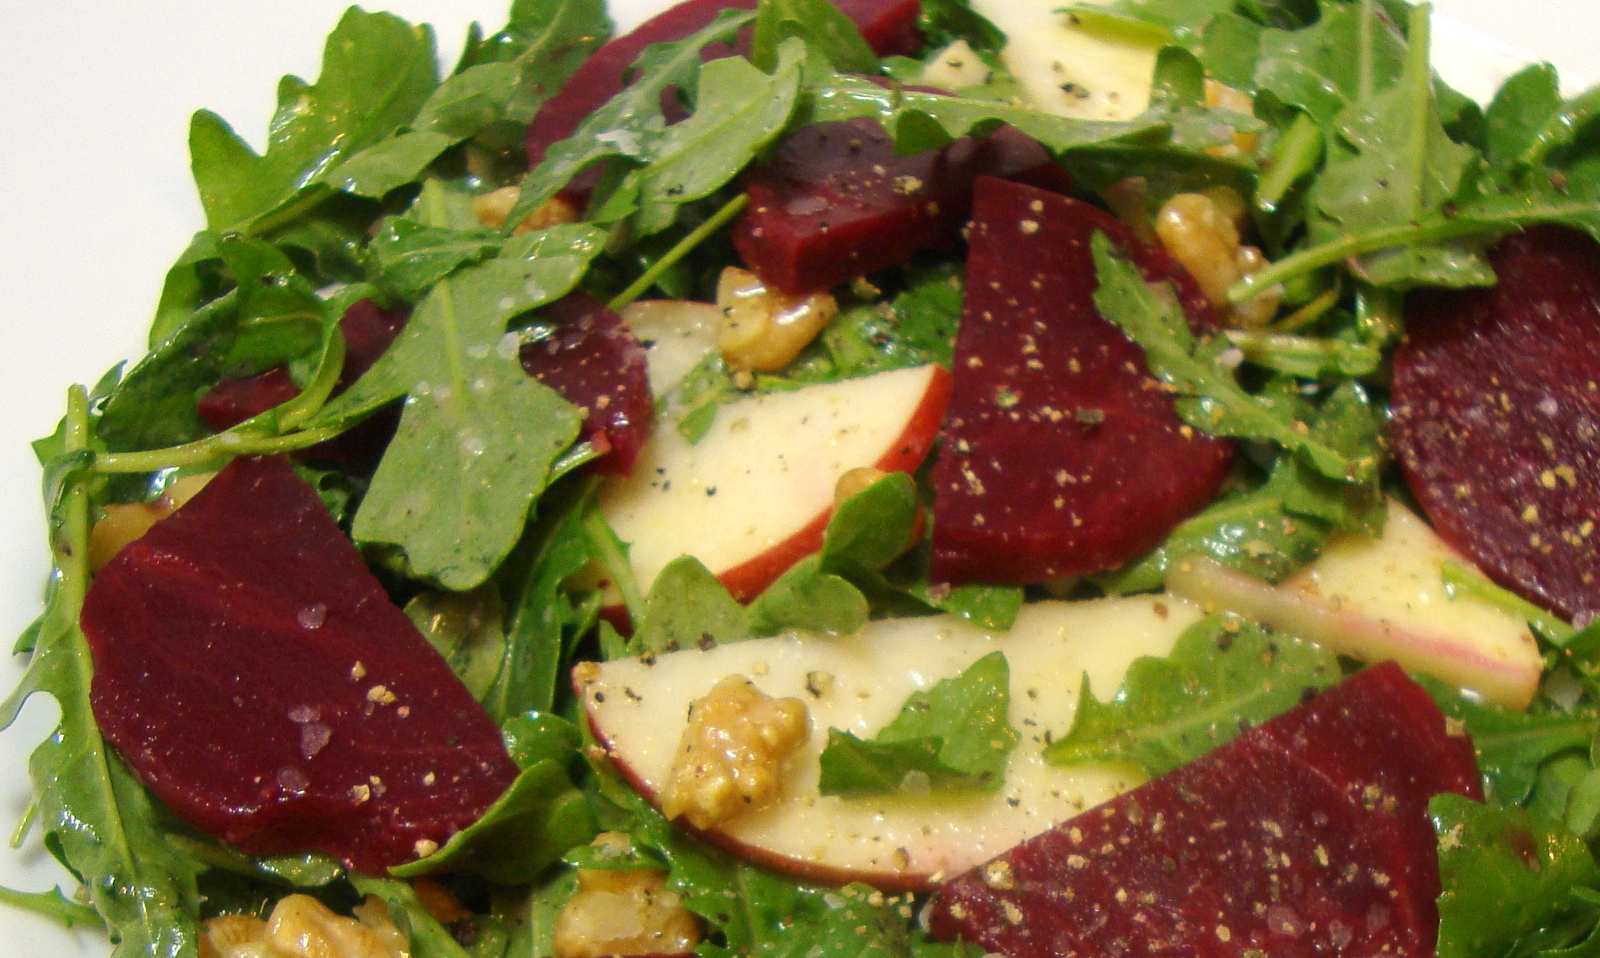 Apple, Walnut and Beet Salad with Citrus Miso Vinaigrette